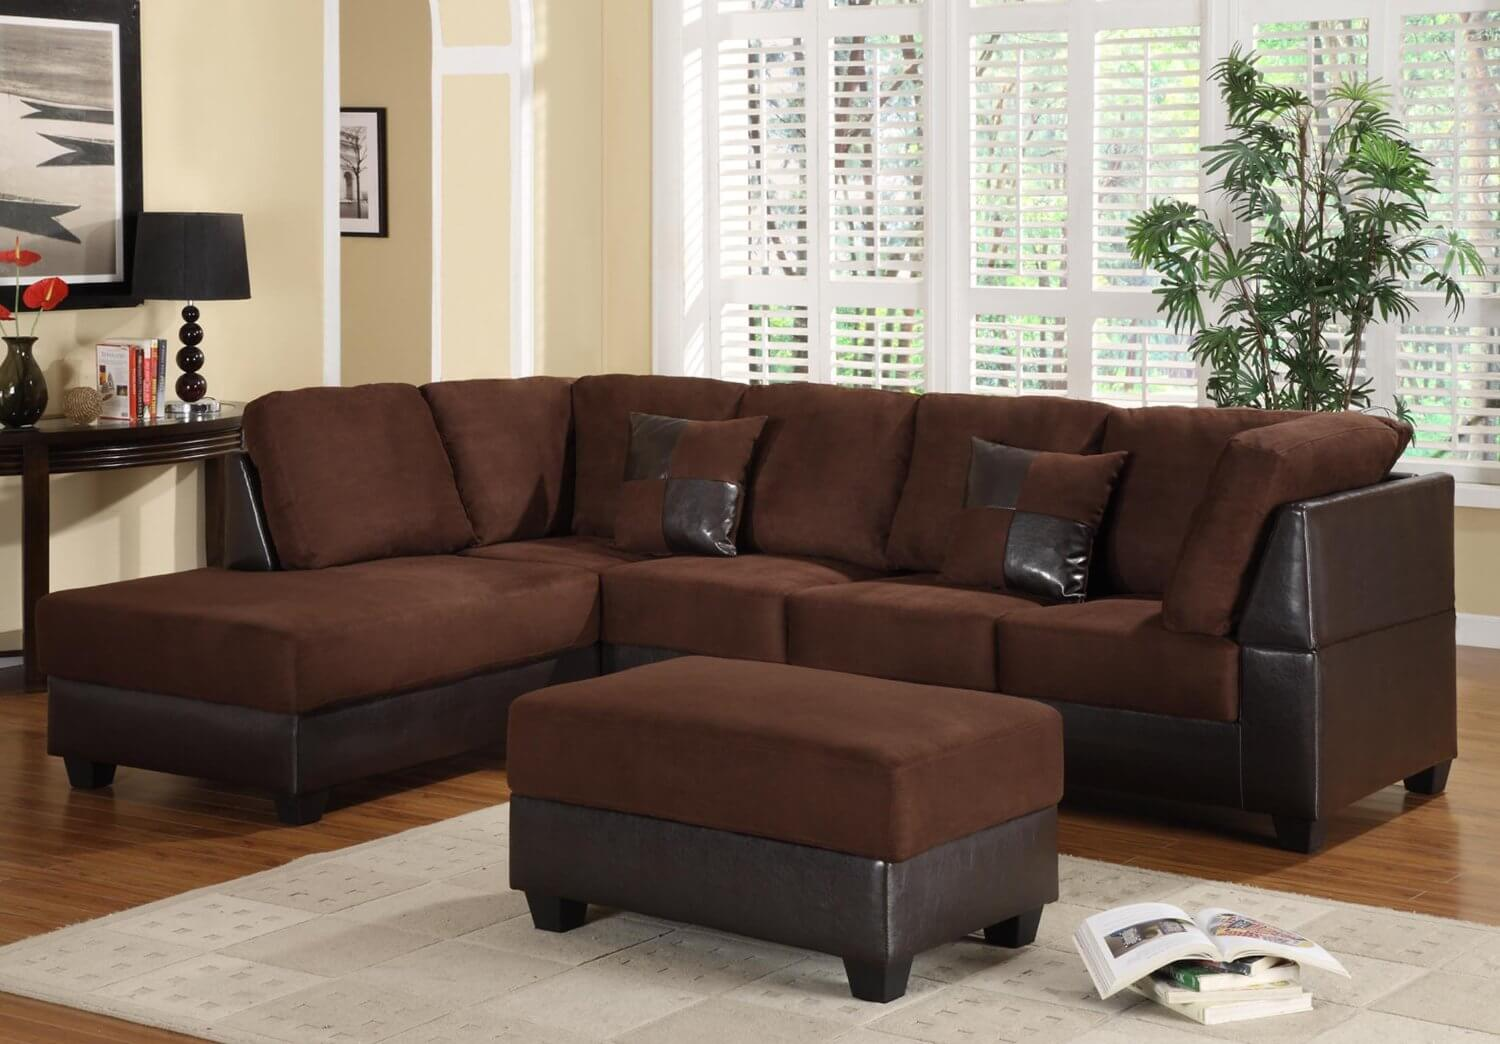 Affordable Sectional Sofas Beautiful Elegant Affordable Sectional ...